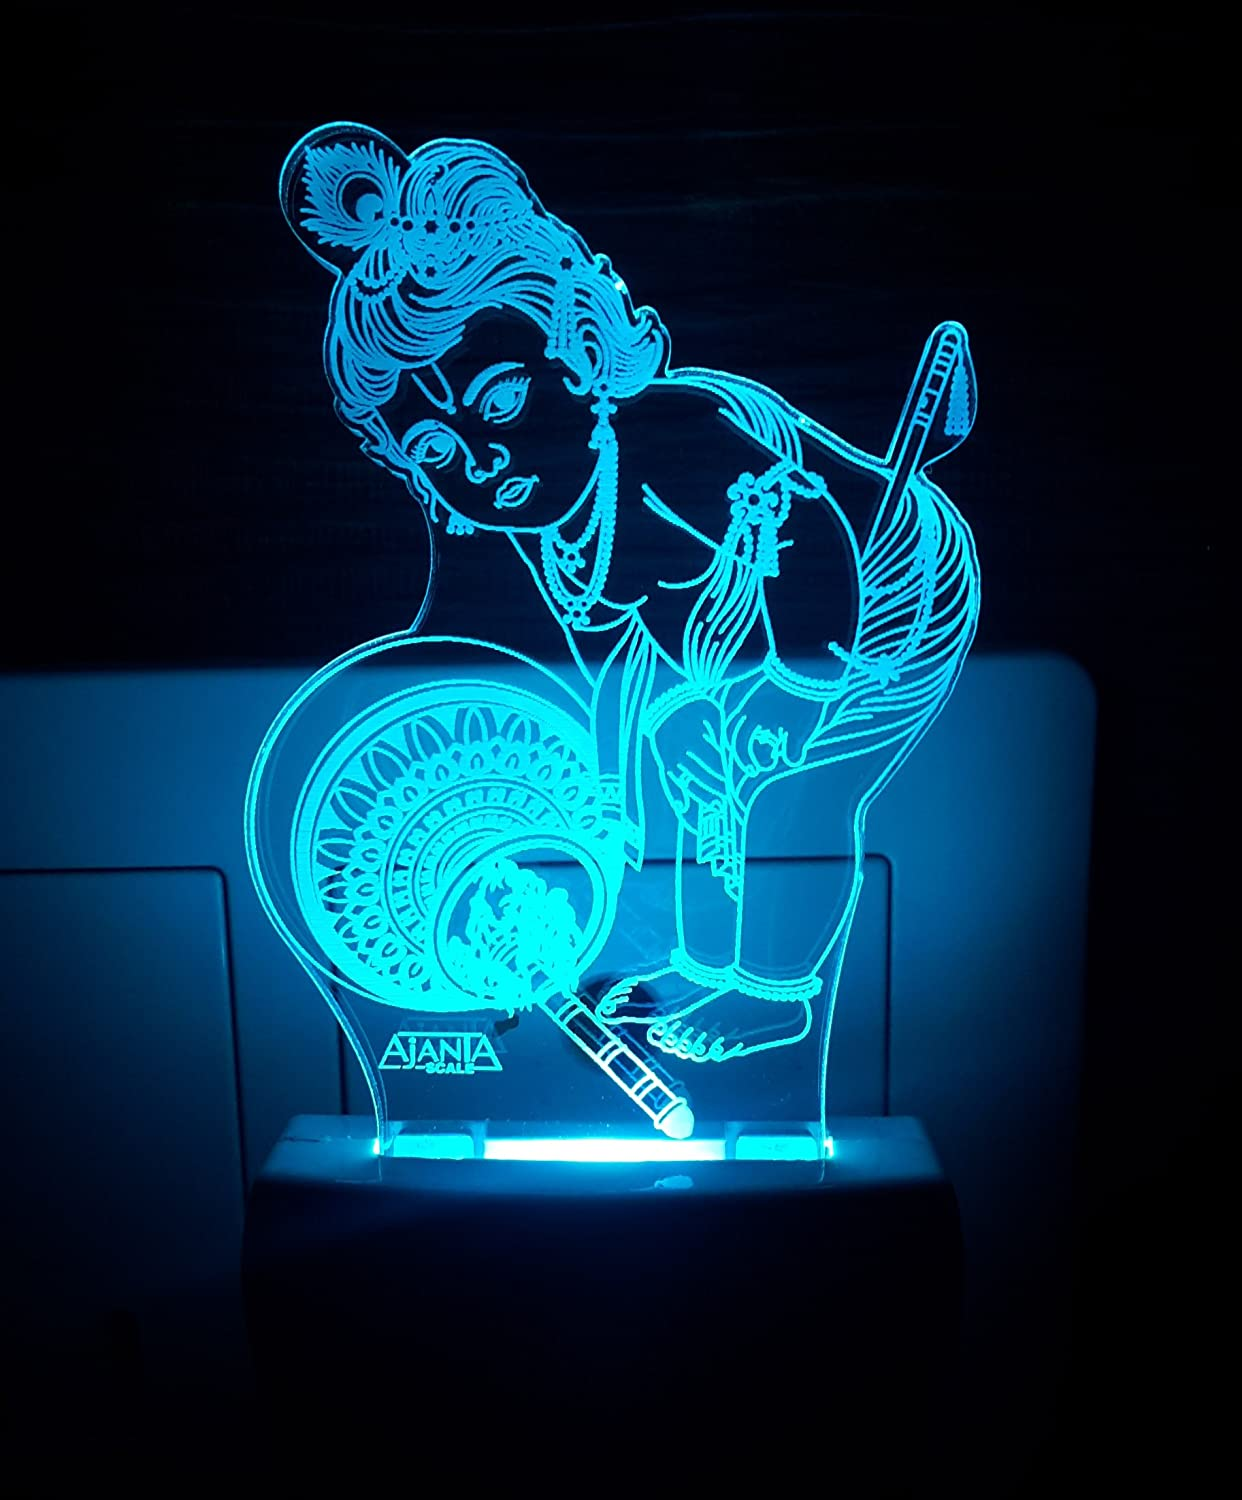 Buy aeon metal sticker 3d lord krishna plastic night lamp multicolour online at low prices in india amazon in